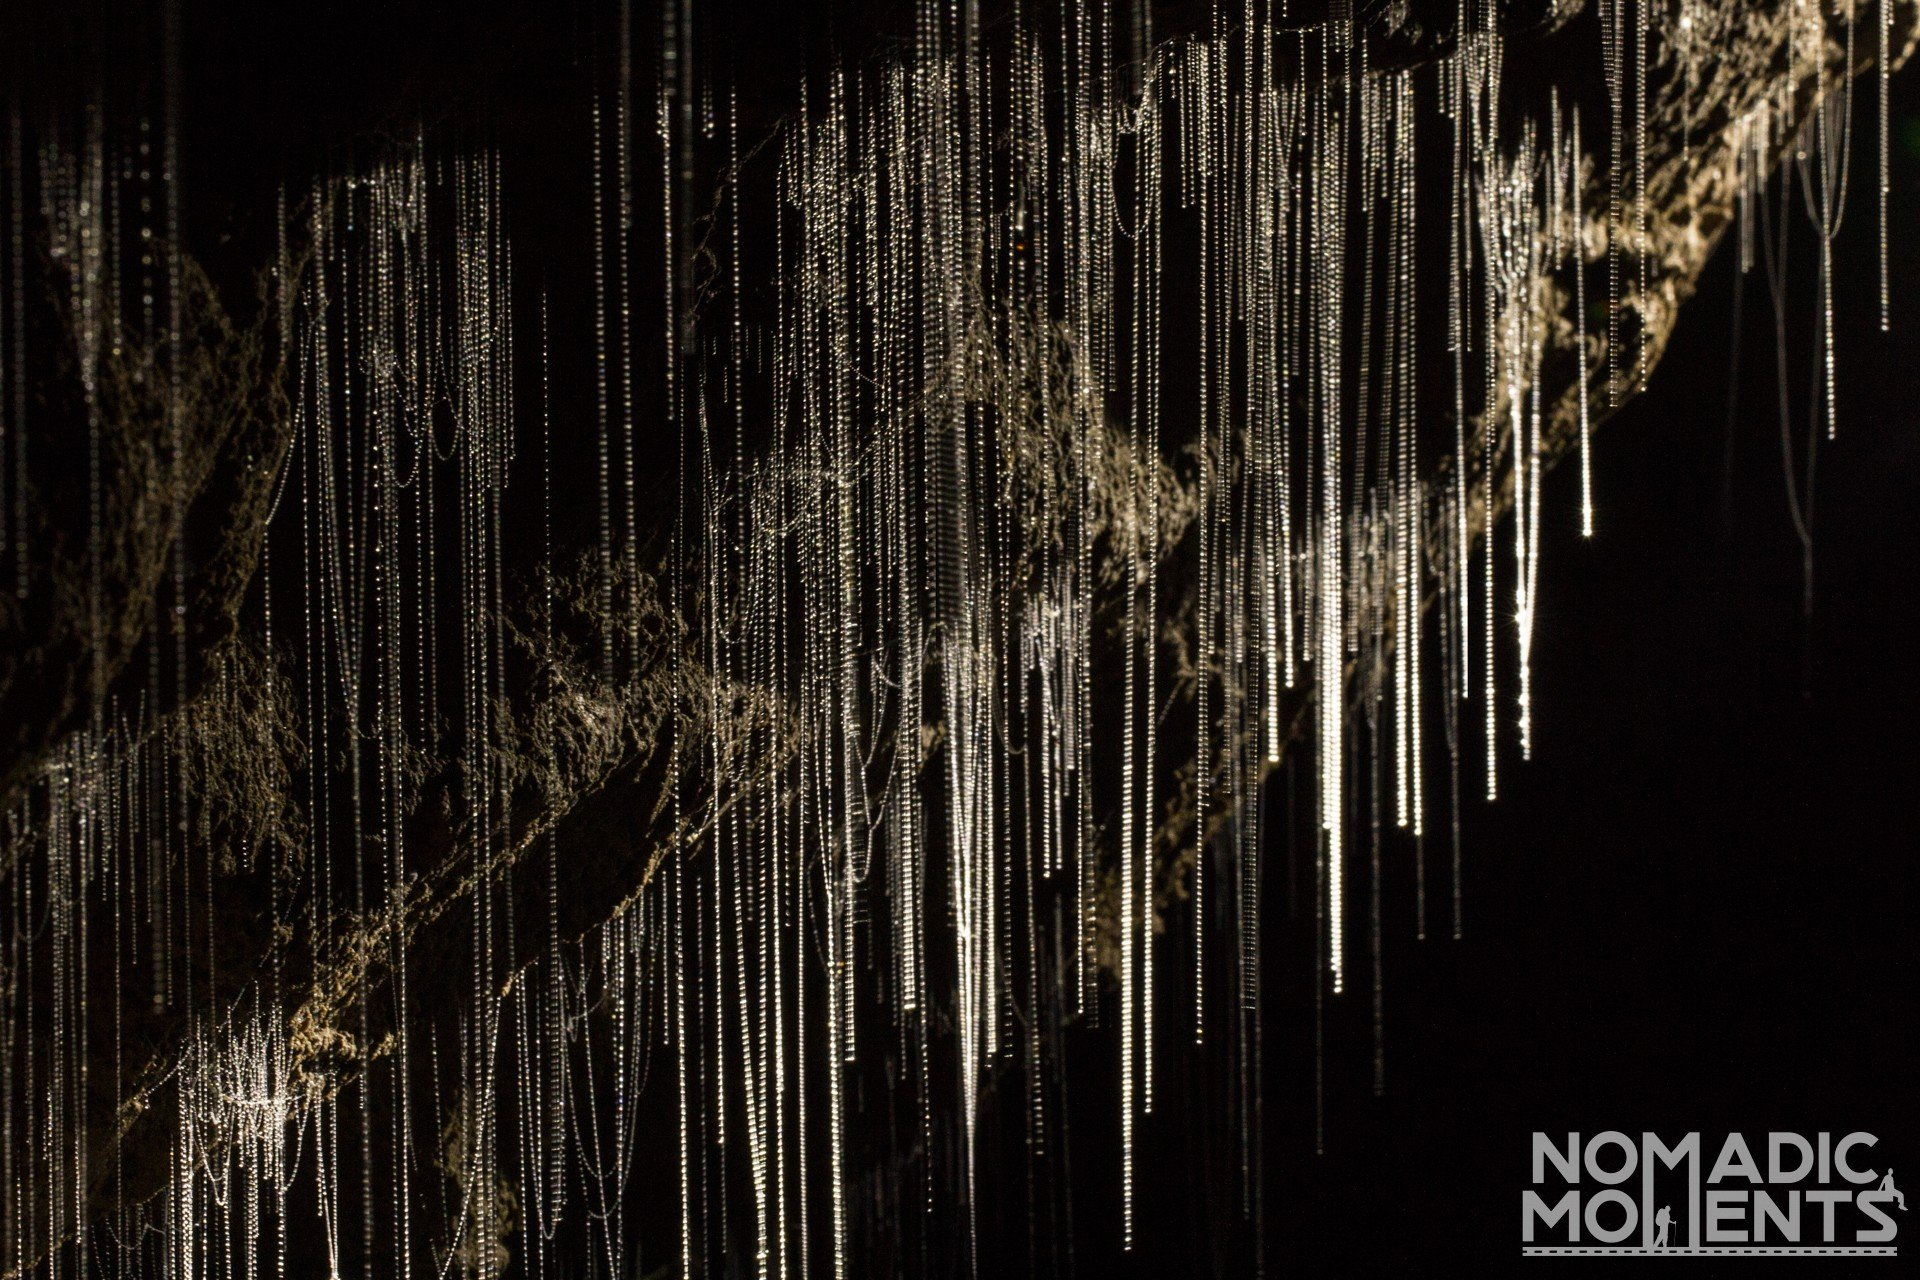 The fishing lines of New Zealand glow worms